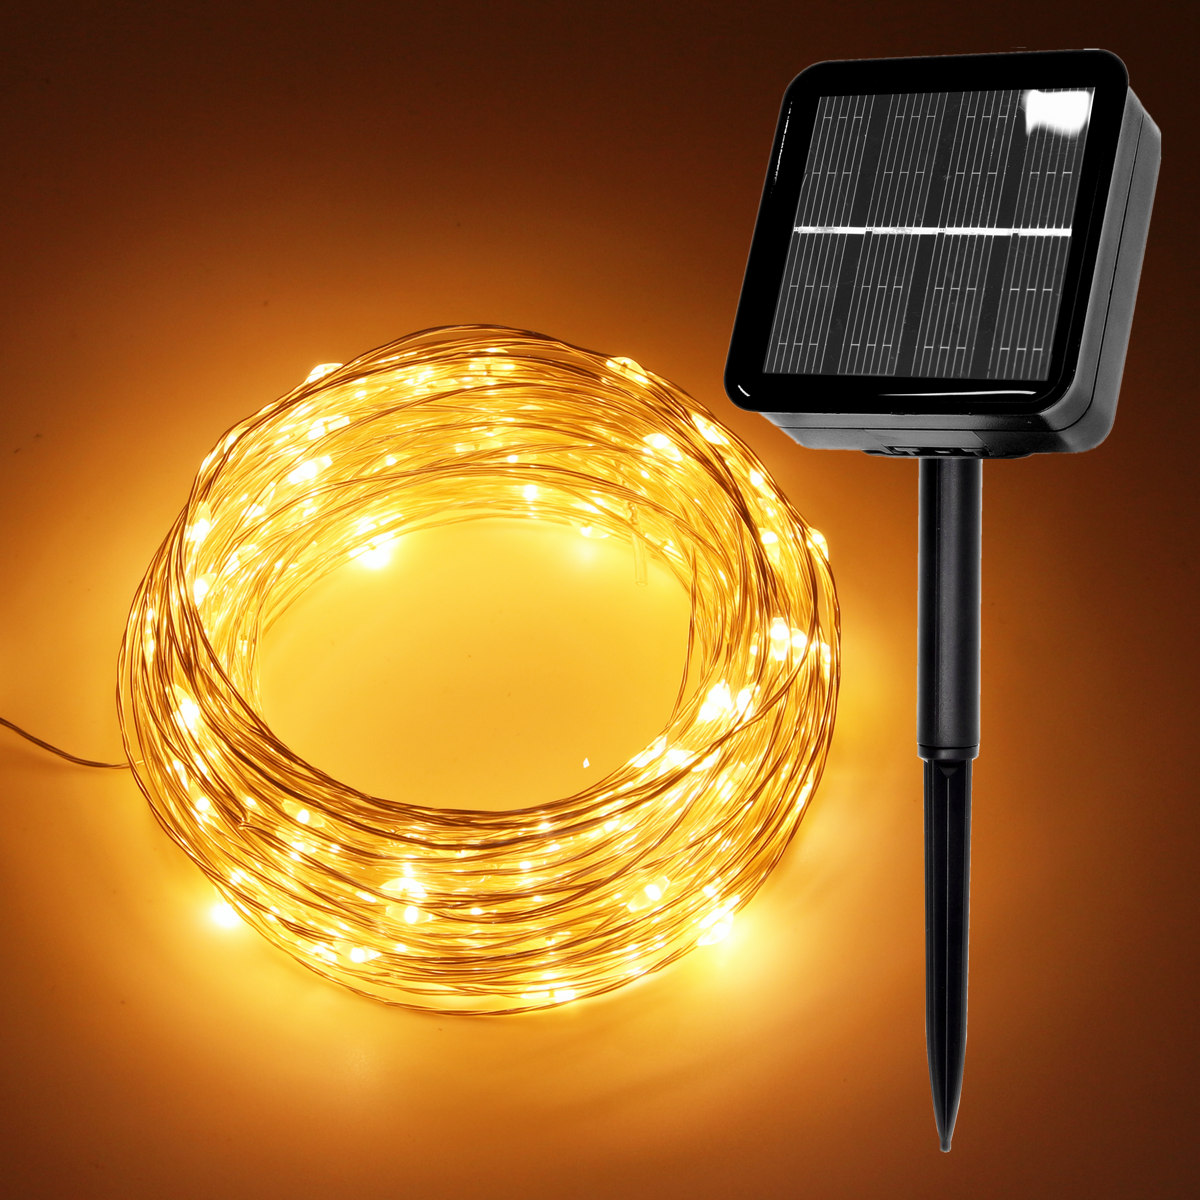 LED Outdoor Solar Lamps/USB 10m/20m/30m LED String Lights Fairy Holiday Christmas Party Garlands Solar Garden Waterproof Lights